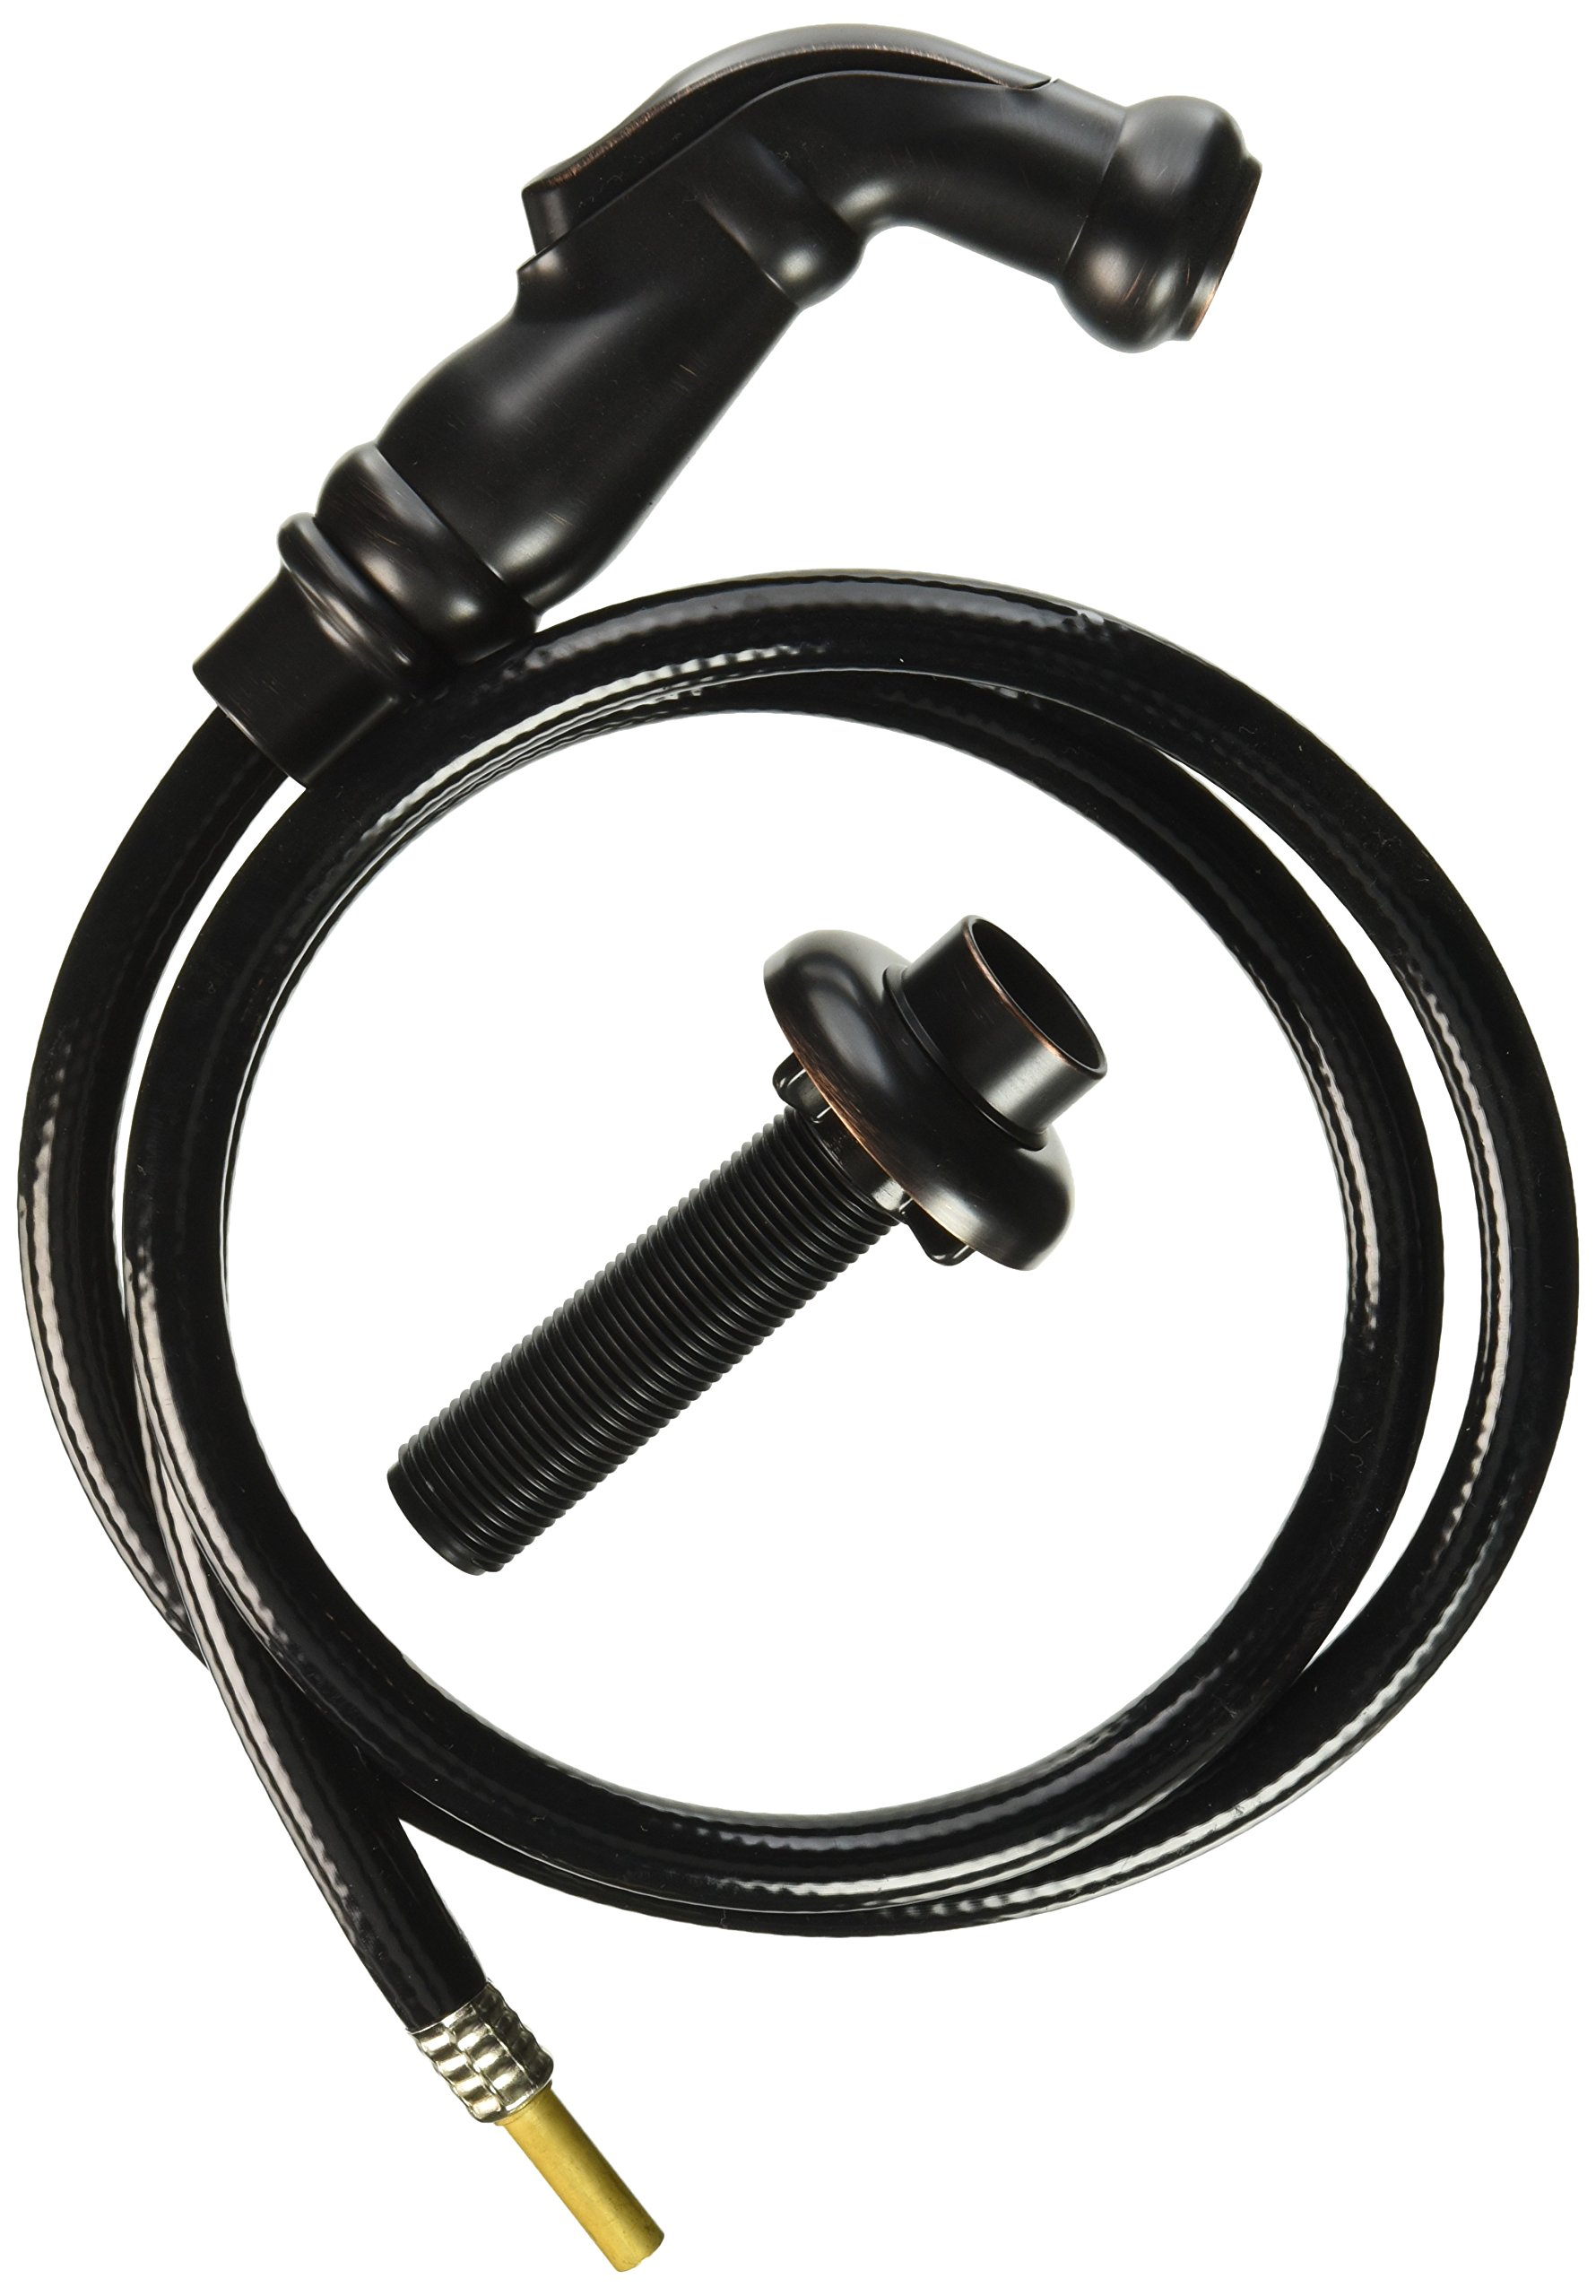 Pfister 951-023Y Side Spray Assembly for Treviso Kitchen Faucets, Tuscan Bronze